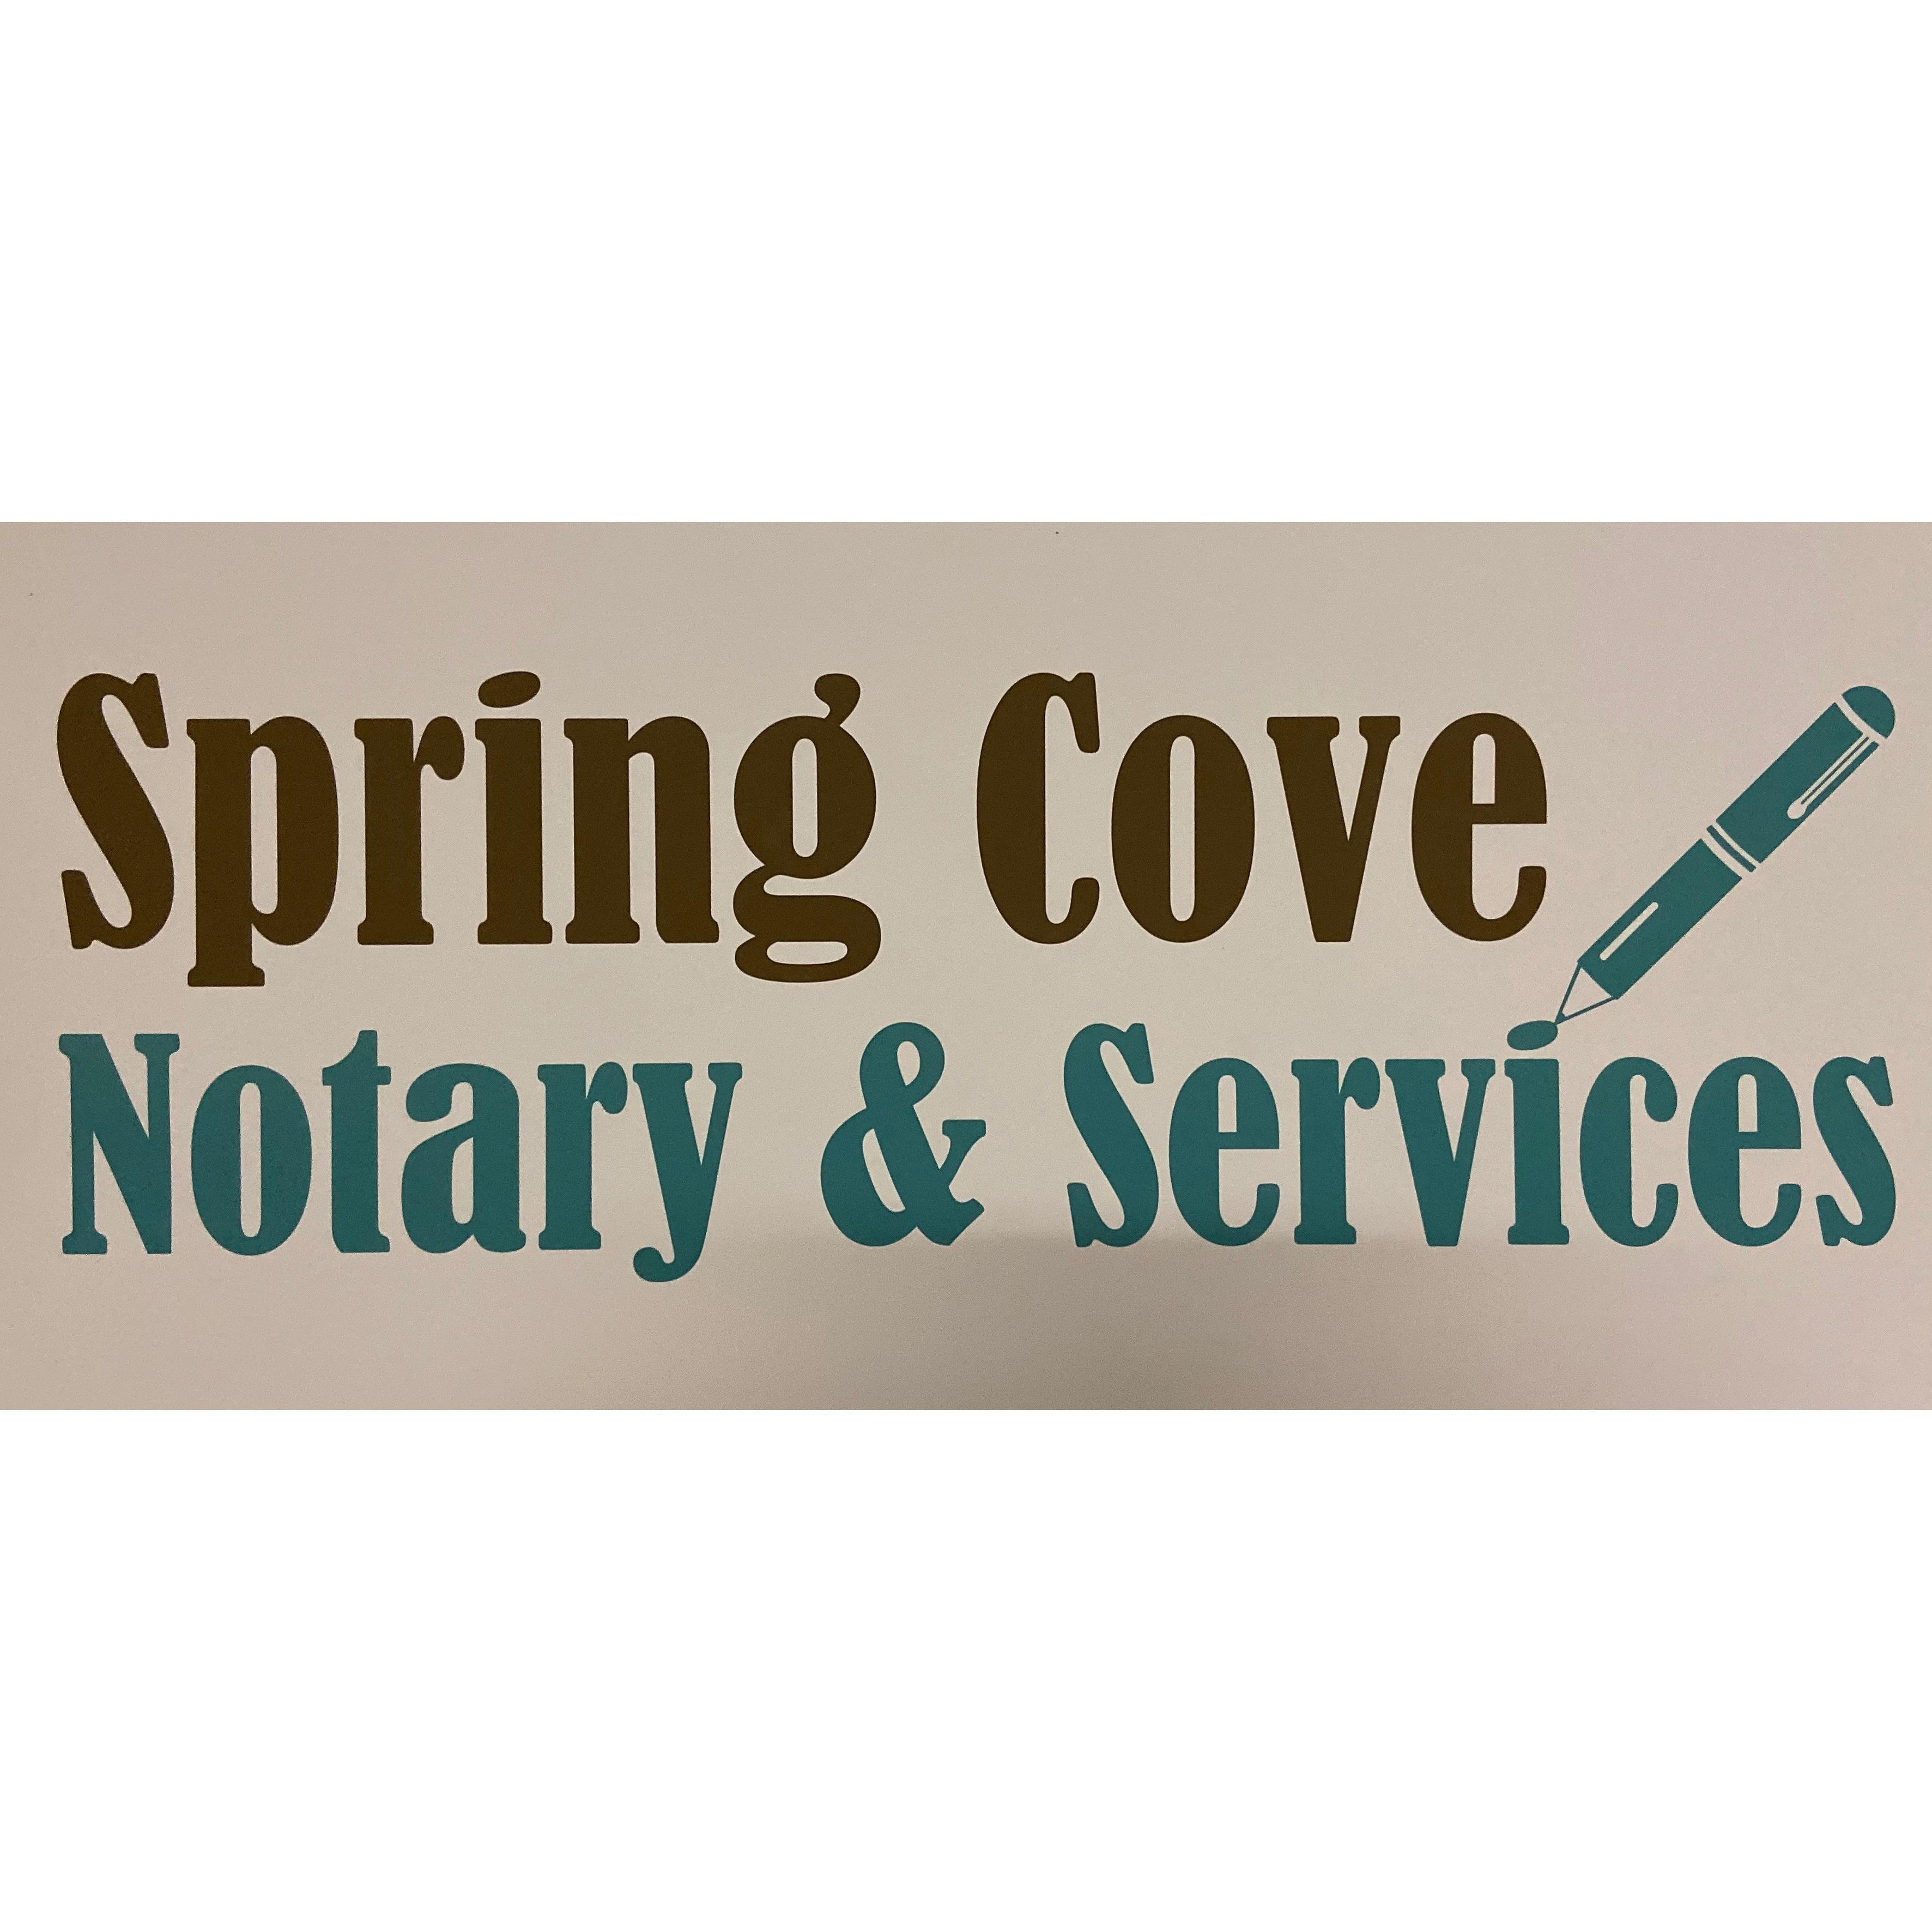 Spring Cove Notary & Services